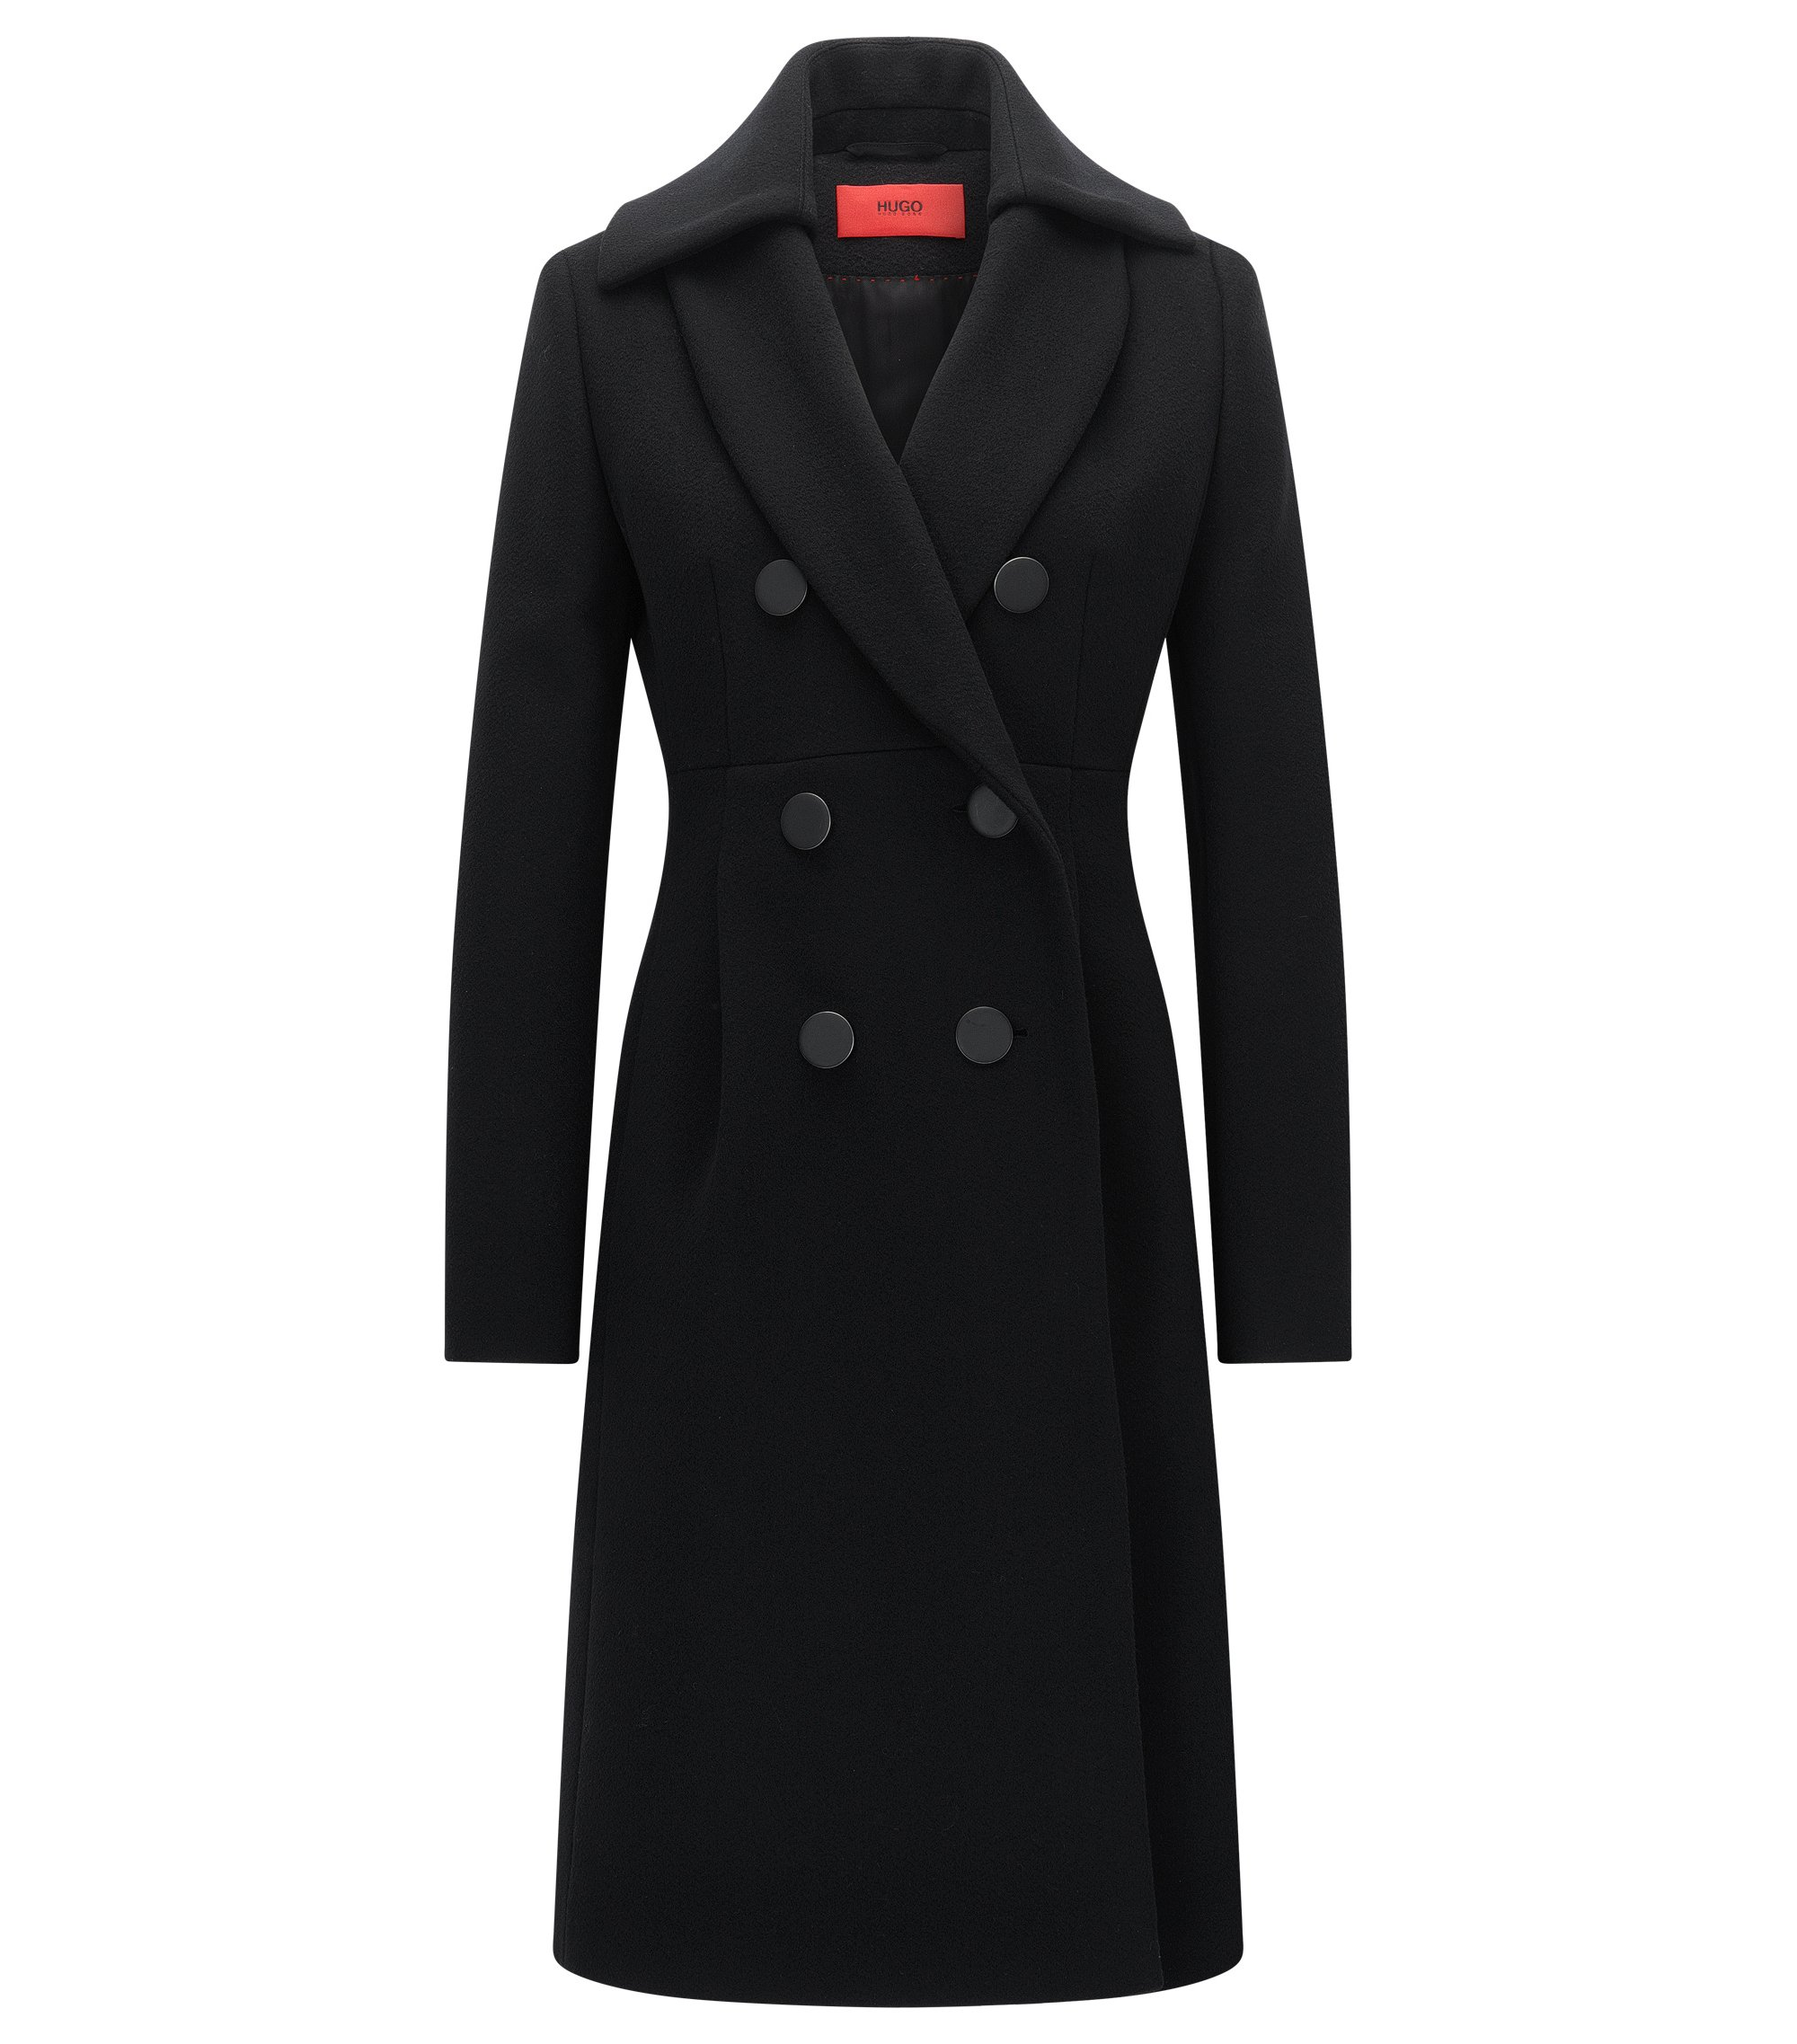 Slim-fit double-breasted coat in a wool blend, Black